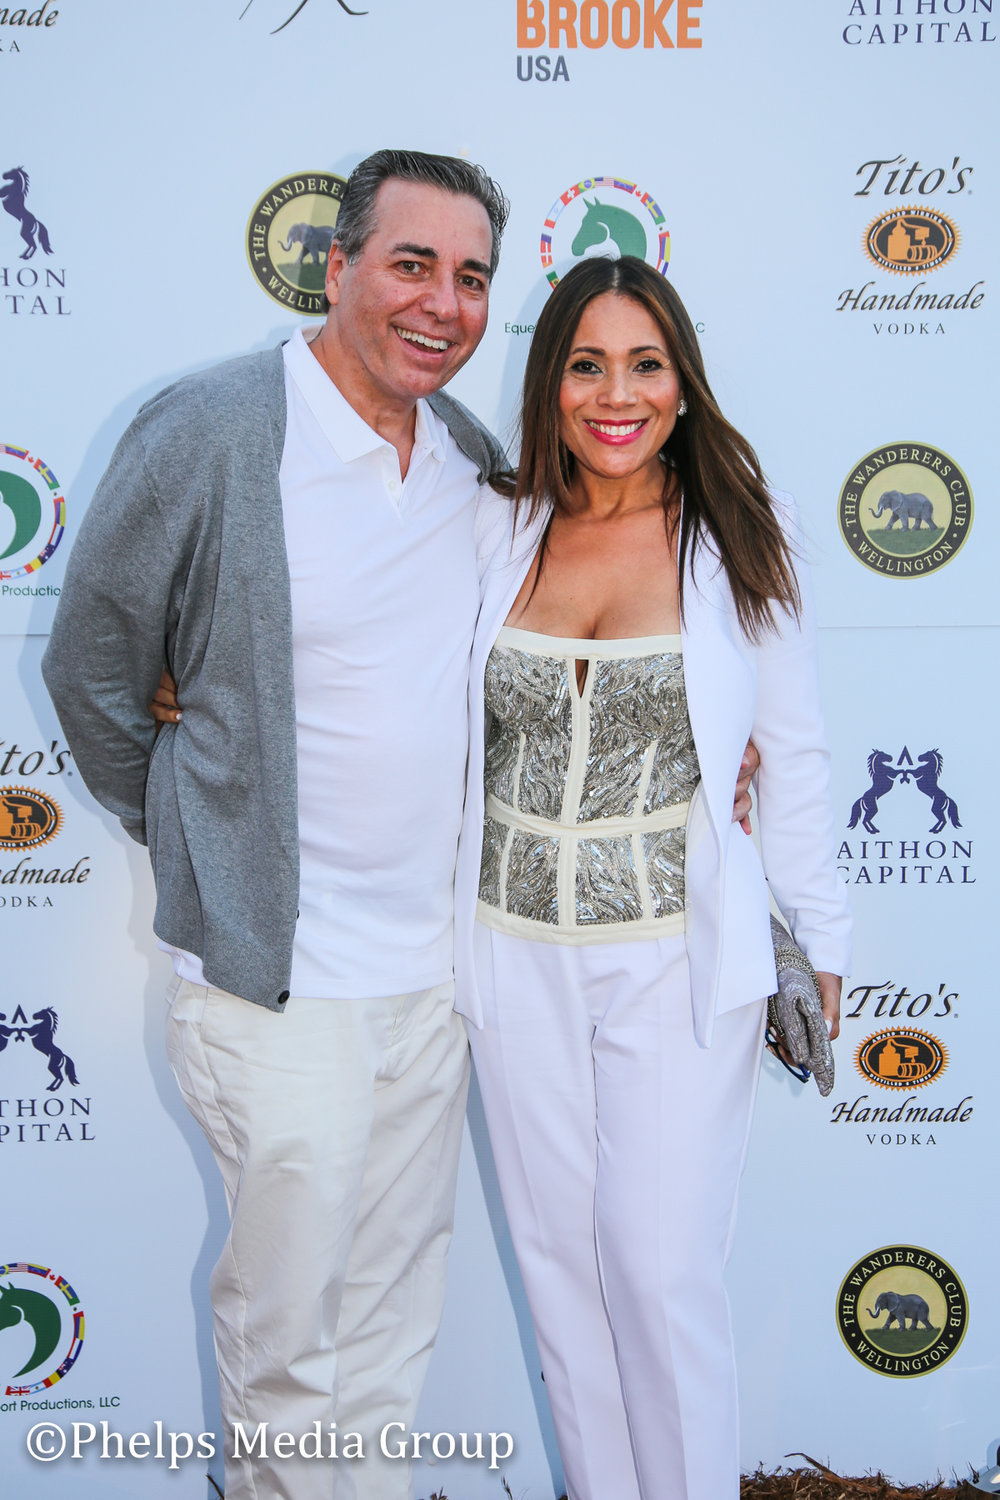 Mr and Mrs Dinucci; Nic Roldan's 2nd Annual Sunset Polo & White Party, FL, by Phelps Media.jpg